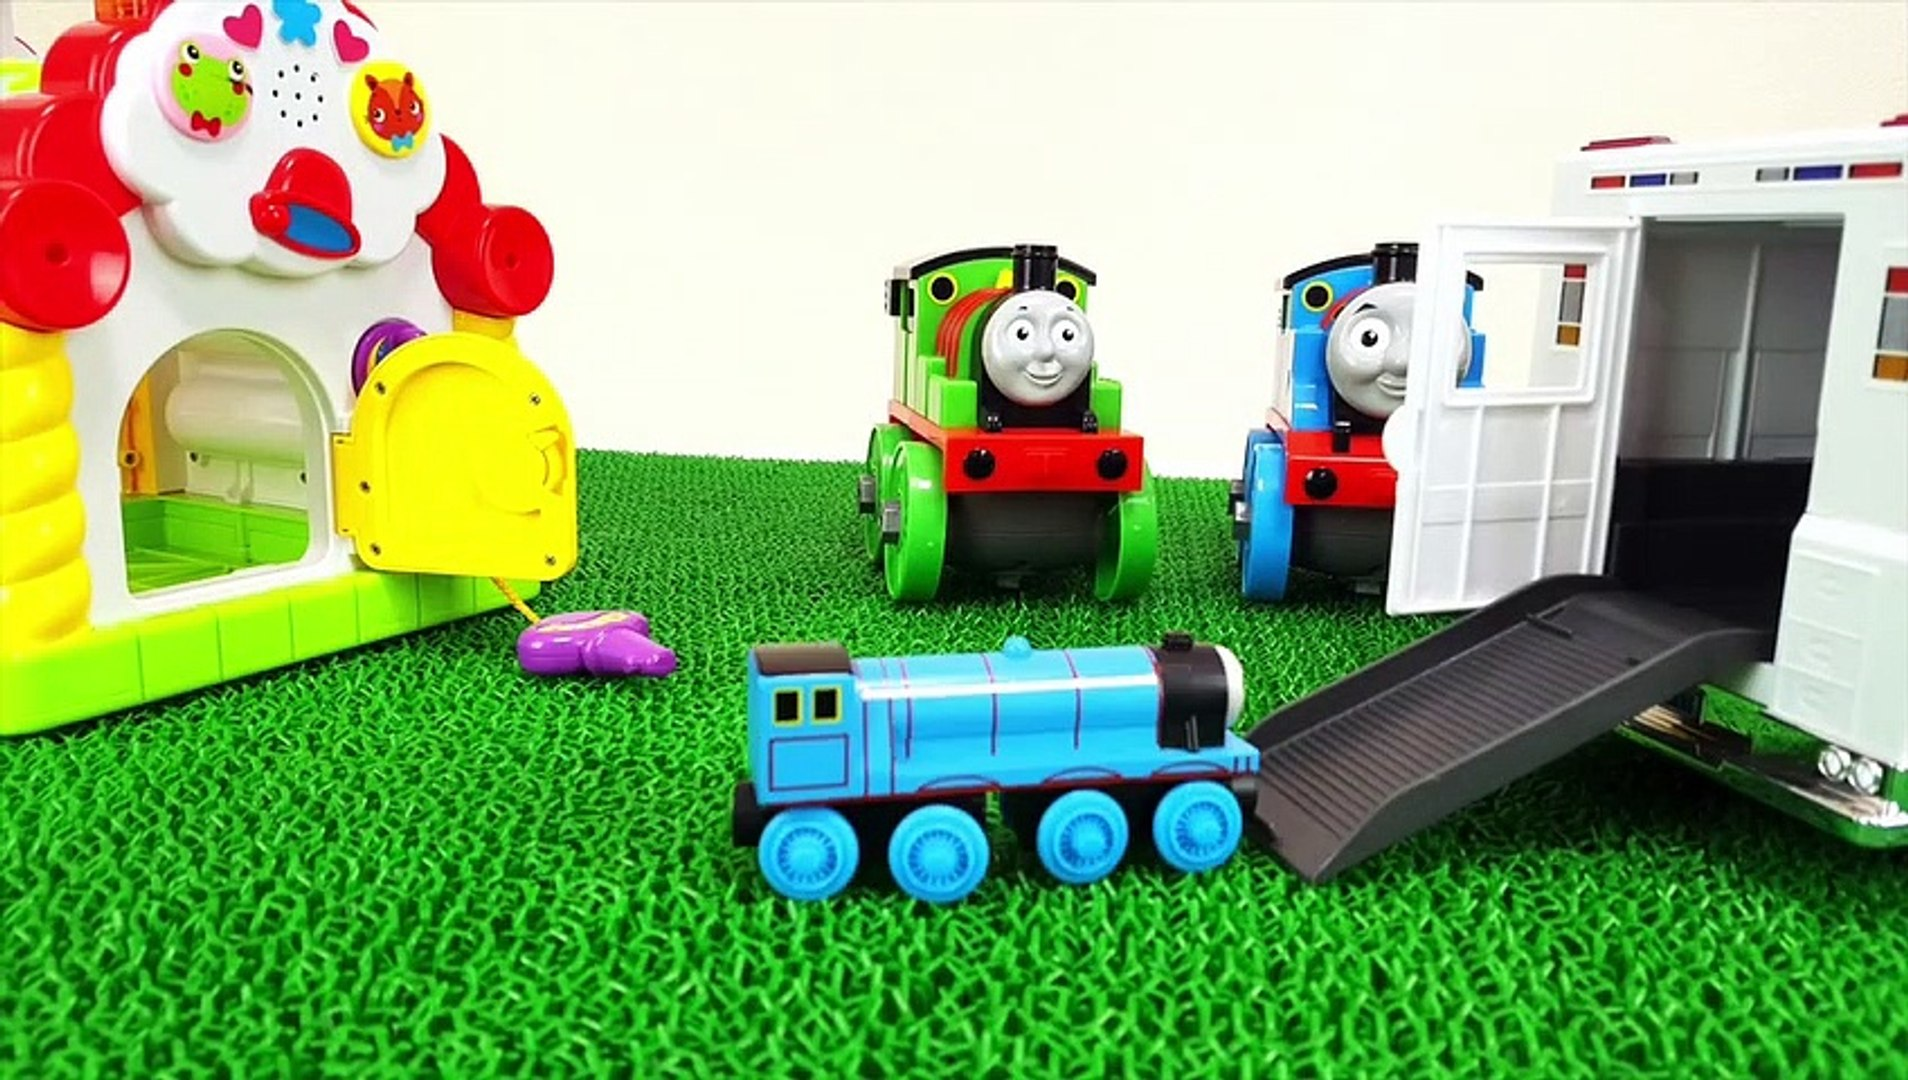 Learn Colors Thomas & Friends Step into the Ambulance Spo Spo Movie for Children